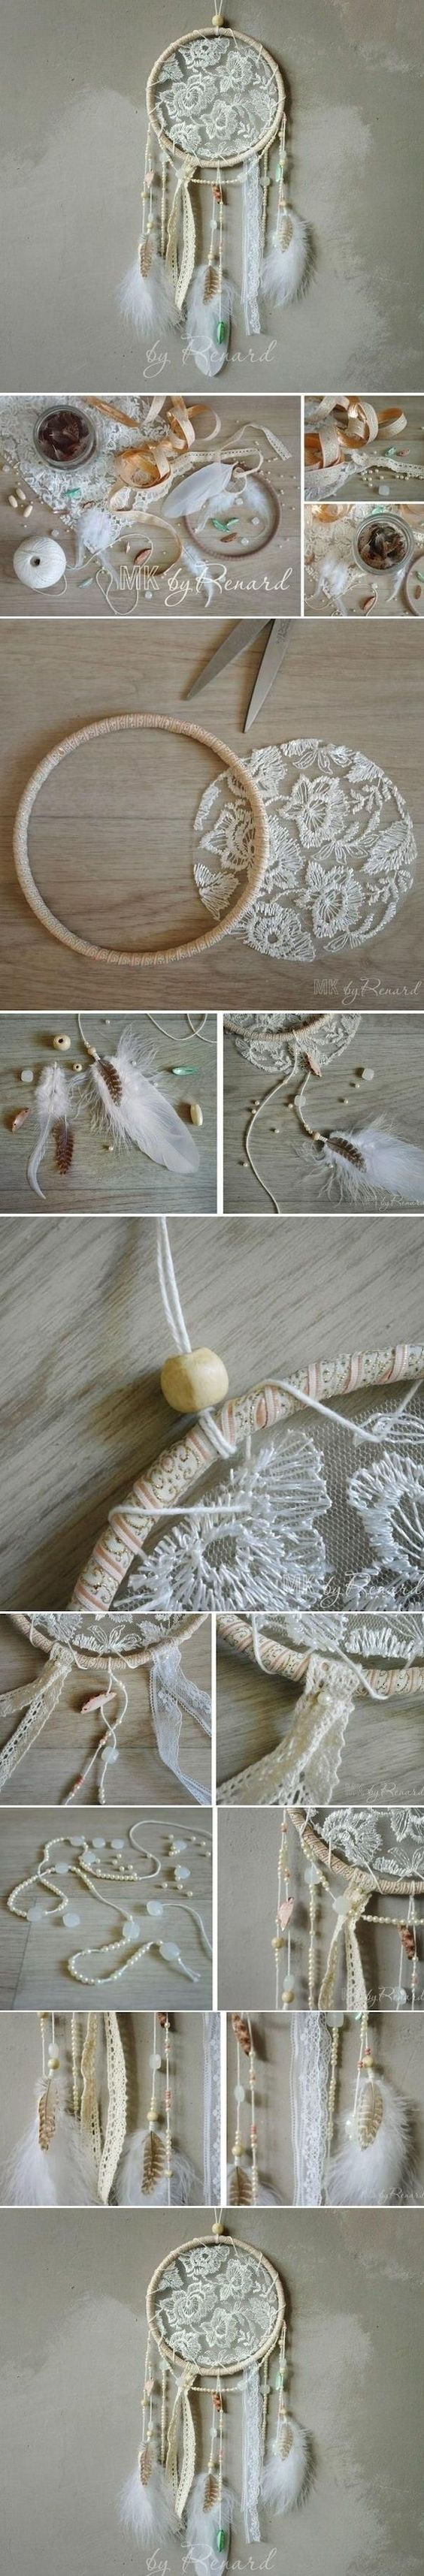 Diy Dream Catcher Pictures, Photos, and Images for Facebook, Tumblr, Pinterest, and Twitter